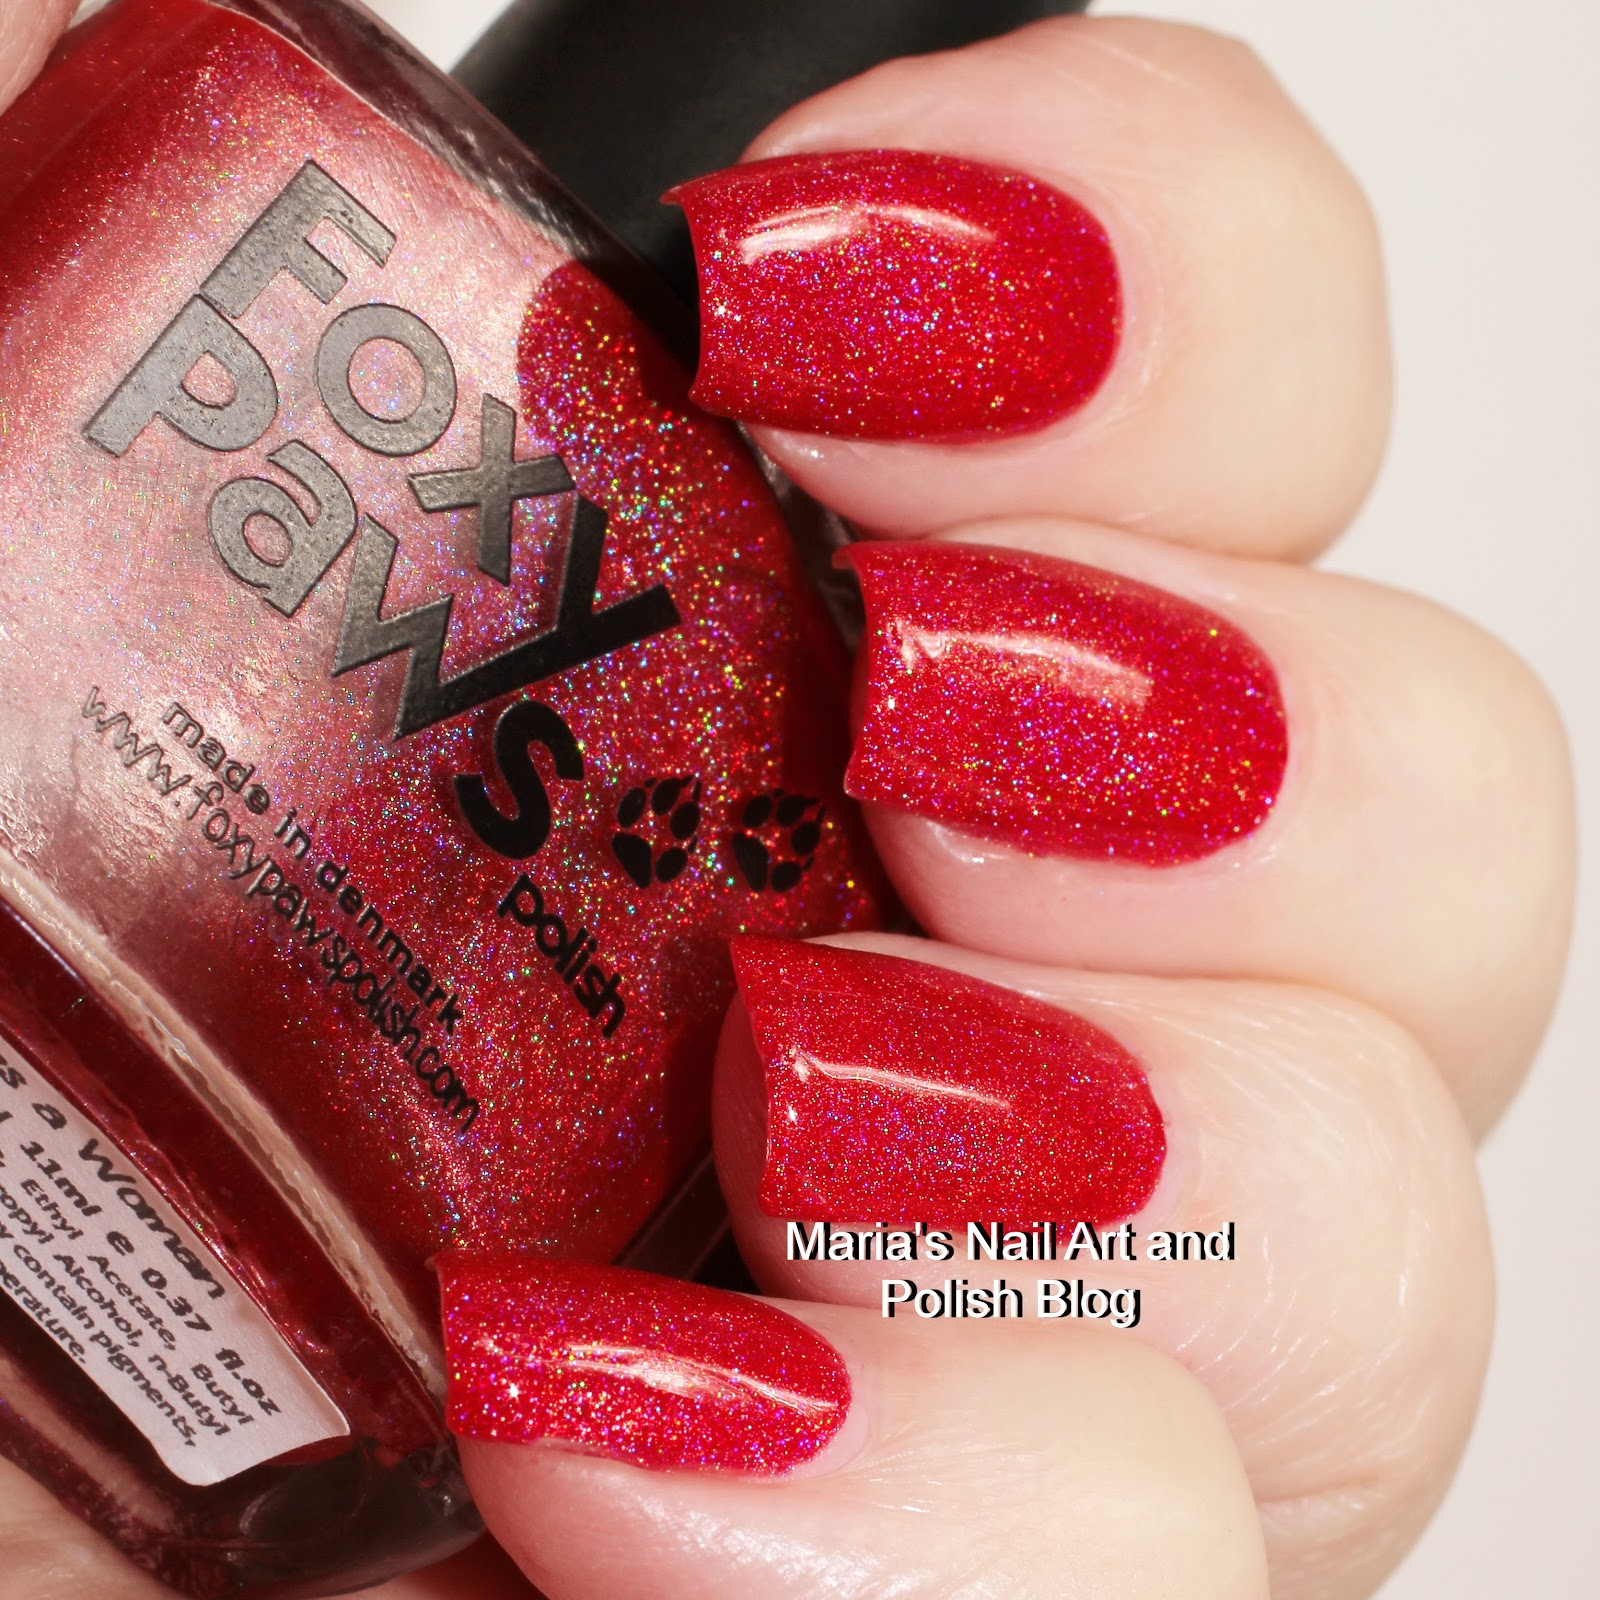 Marias Nail Art And Polish Blog Flushed With Stripes And: Marias Nail Art And Polish Blog: Foxy Paws It Take A Woman